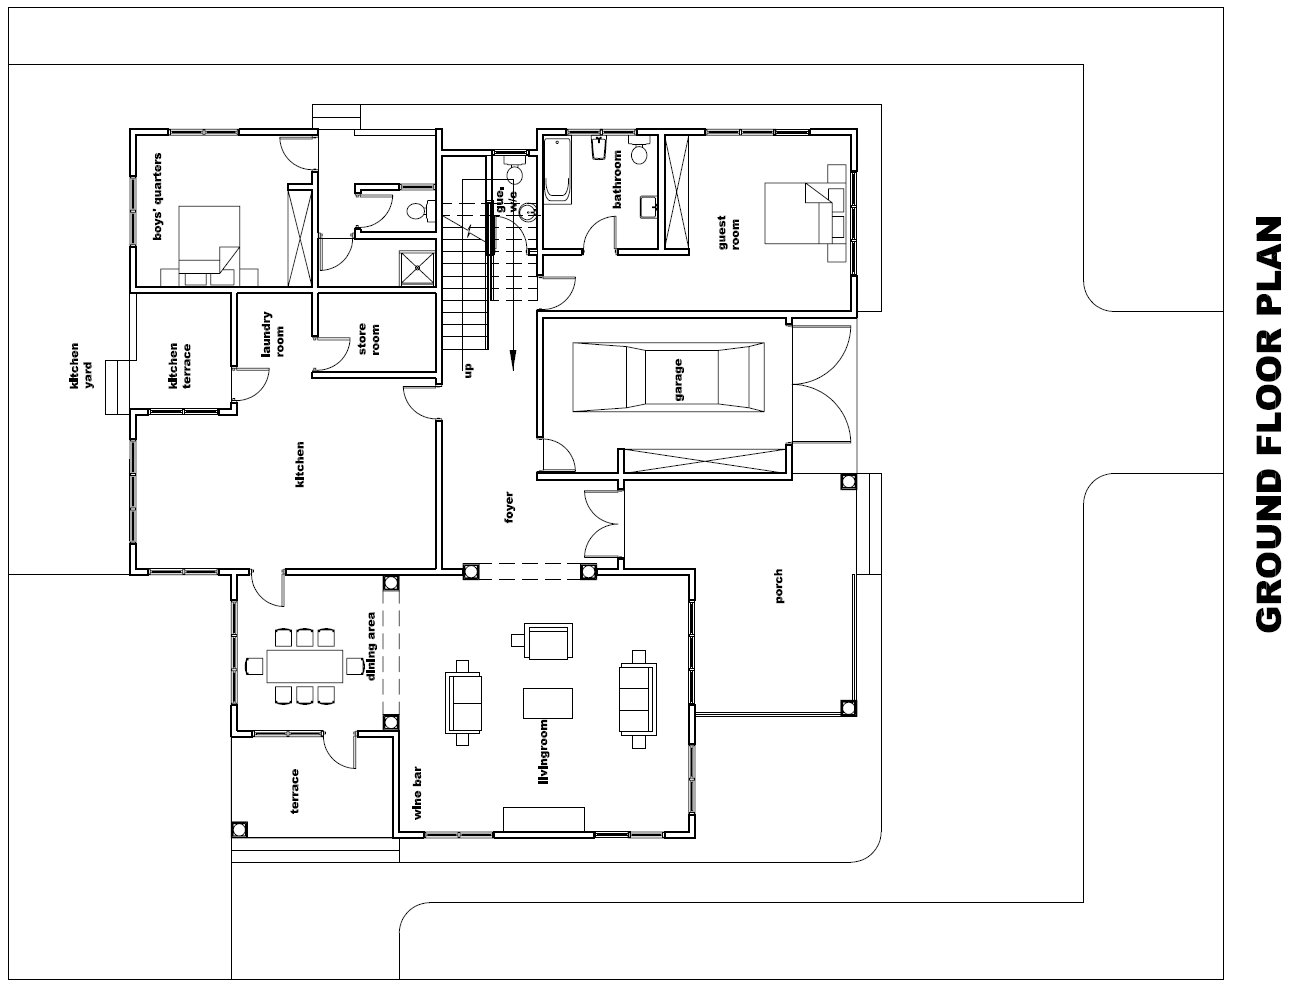 Ghana House Plans Torgbii House Plan Ground Plan